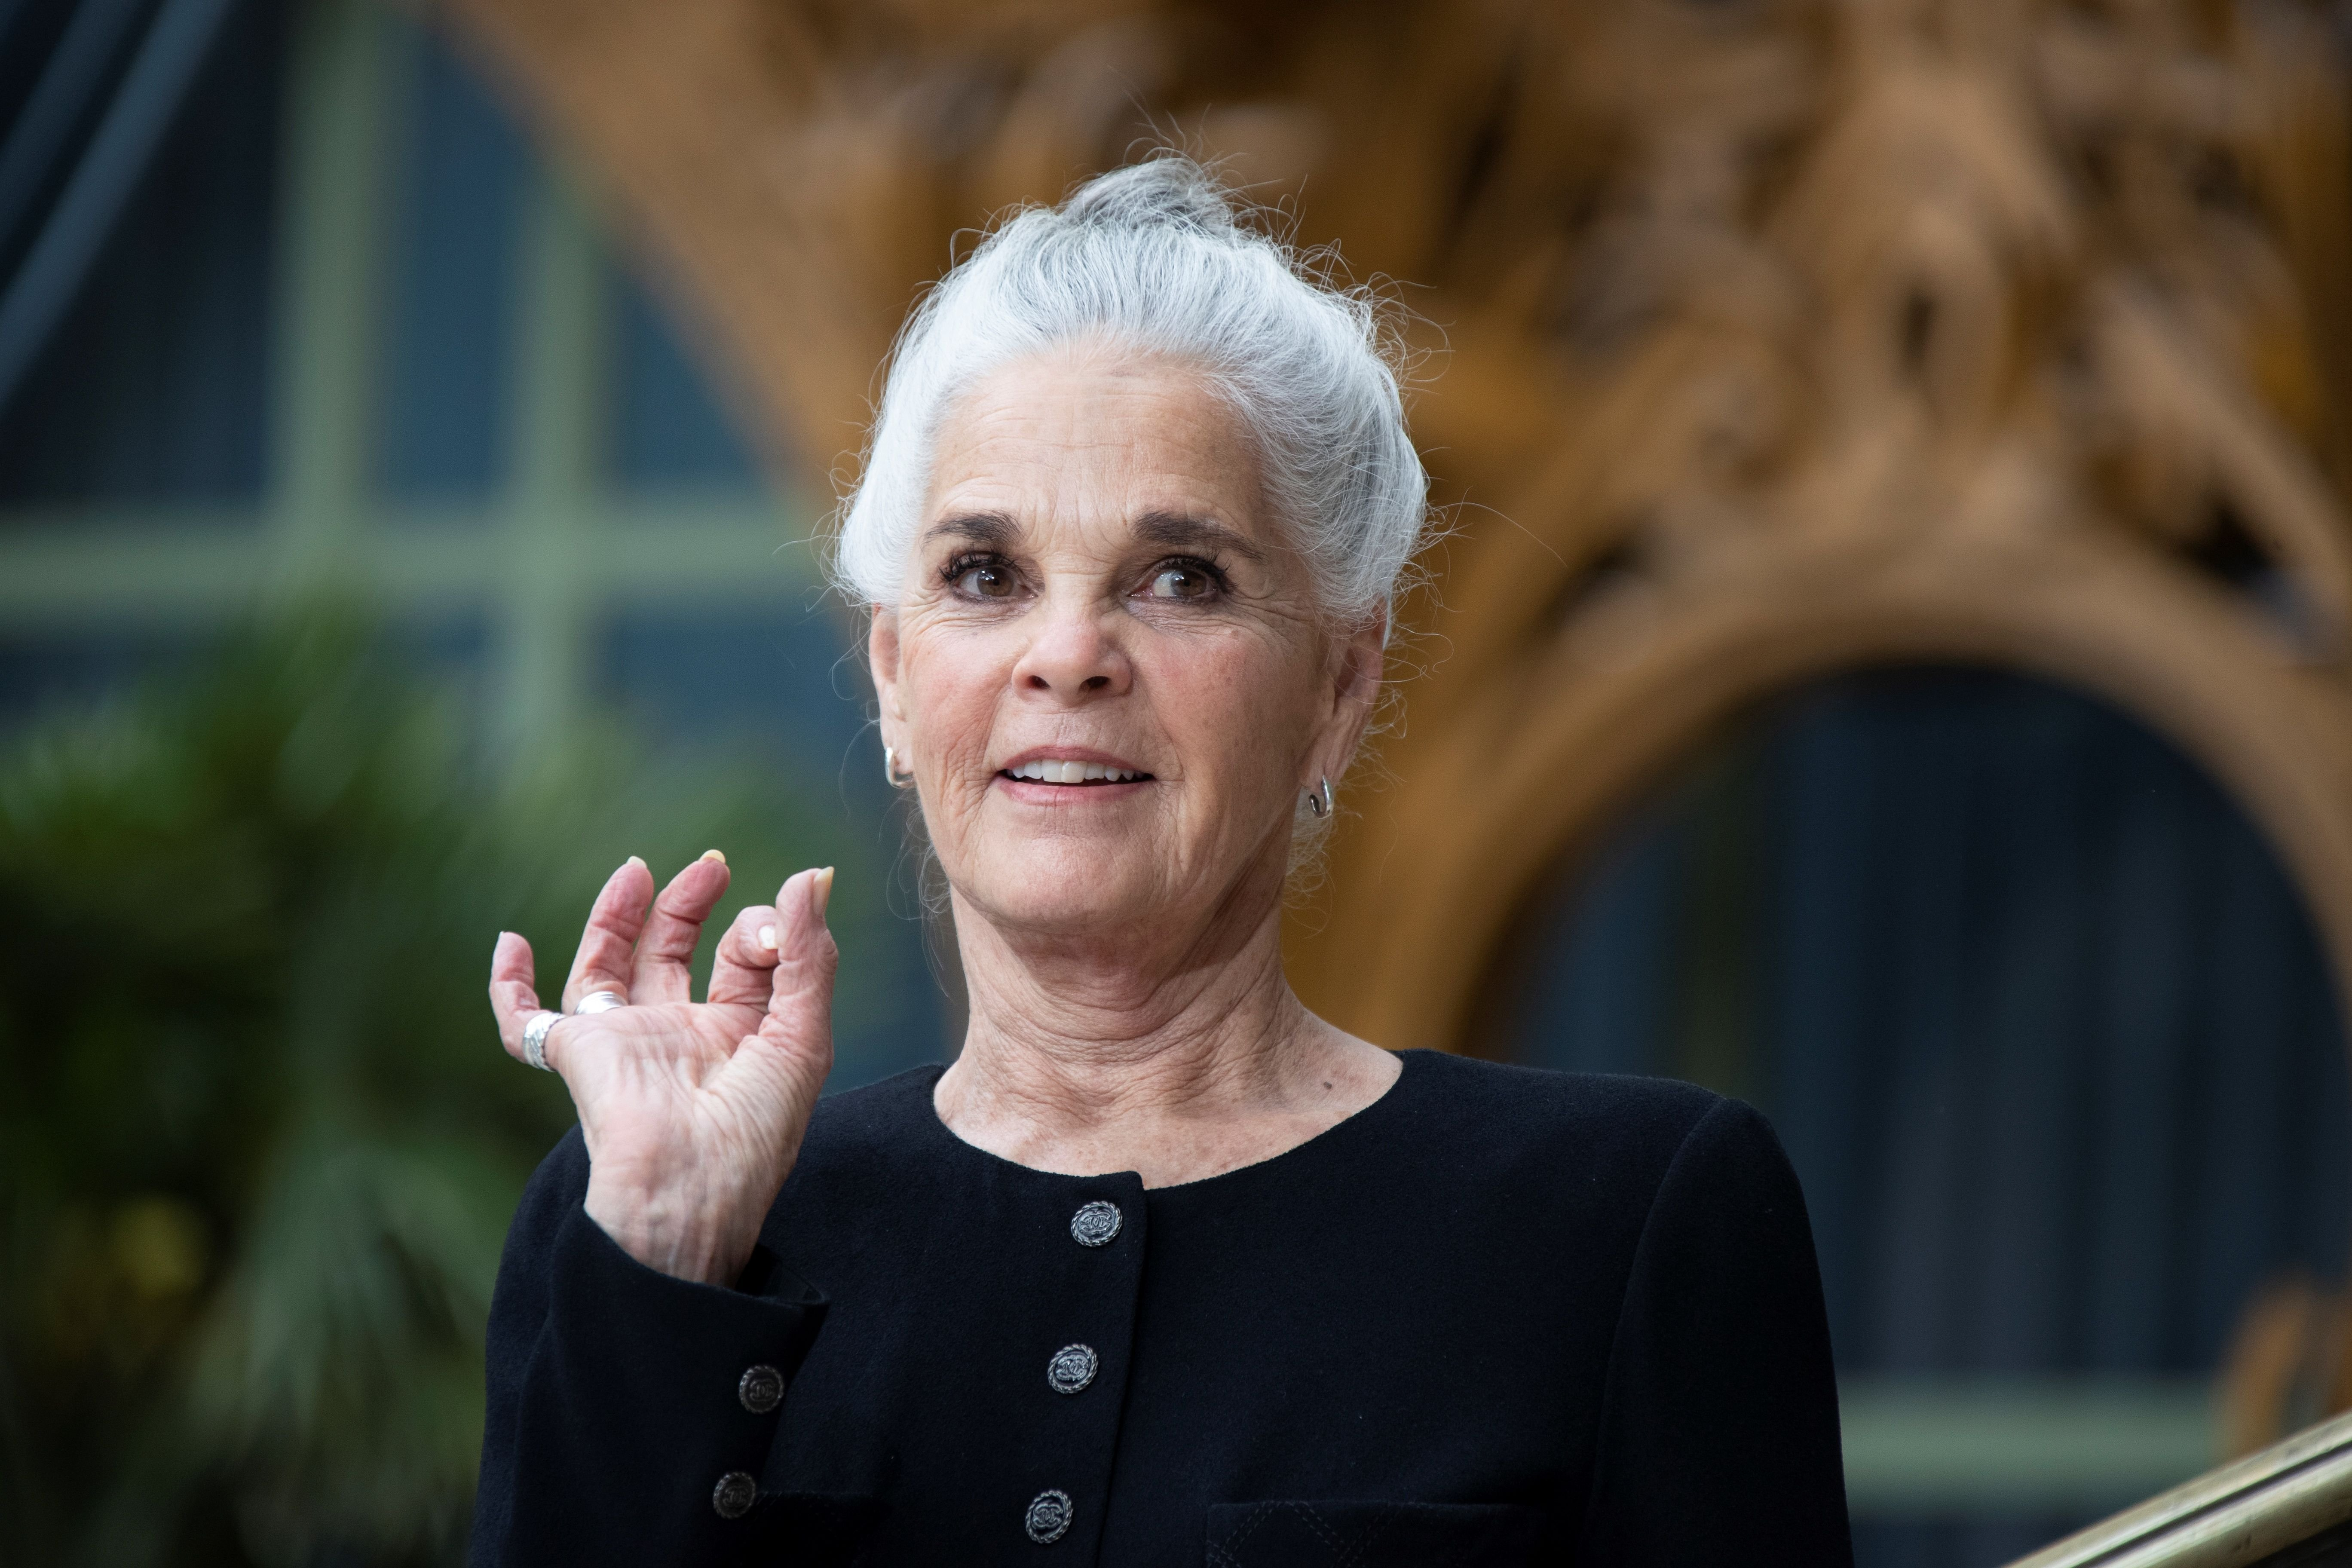 US actress Ali MacGraw poses during the photocall prior to the 2020 Chanel Croisiere (Cruise) fashion show at the Grand Palais in Paris on May 3, 2019.| Source: Getty Images